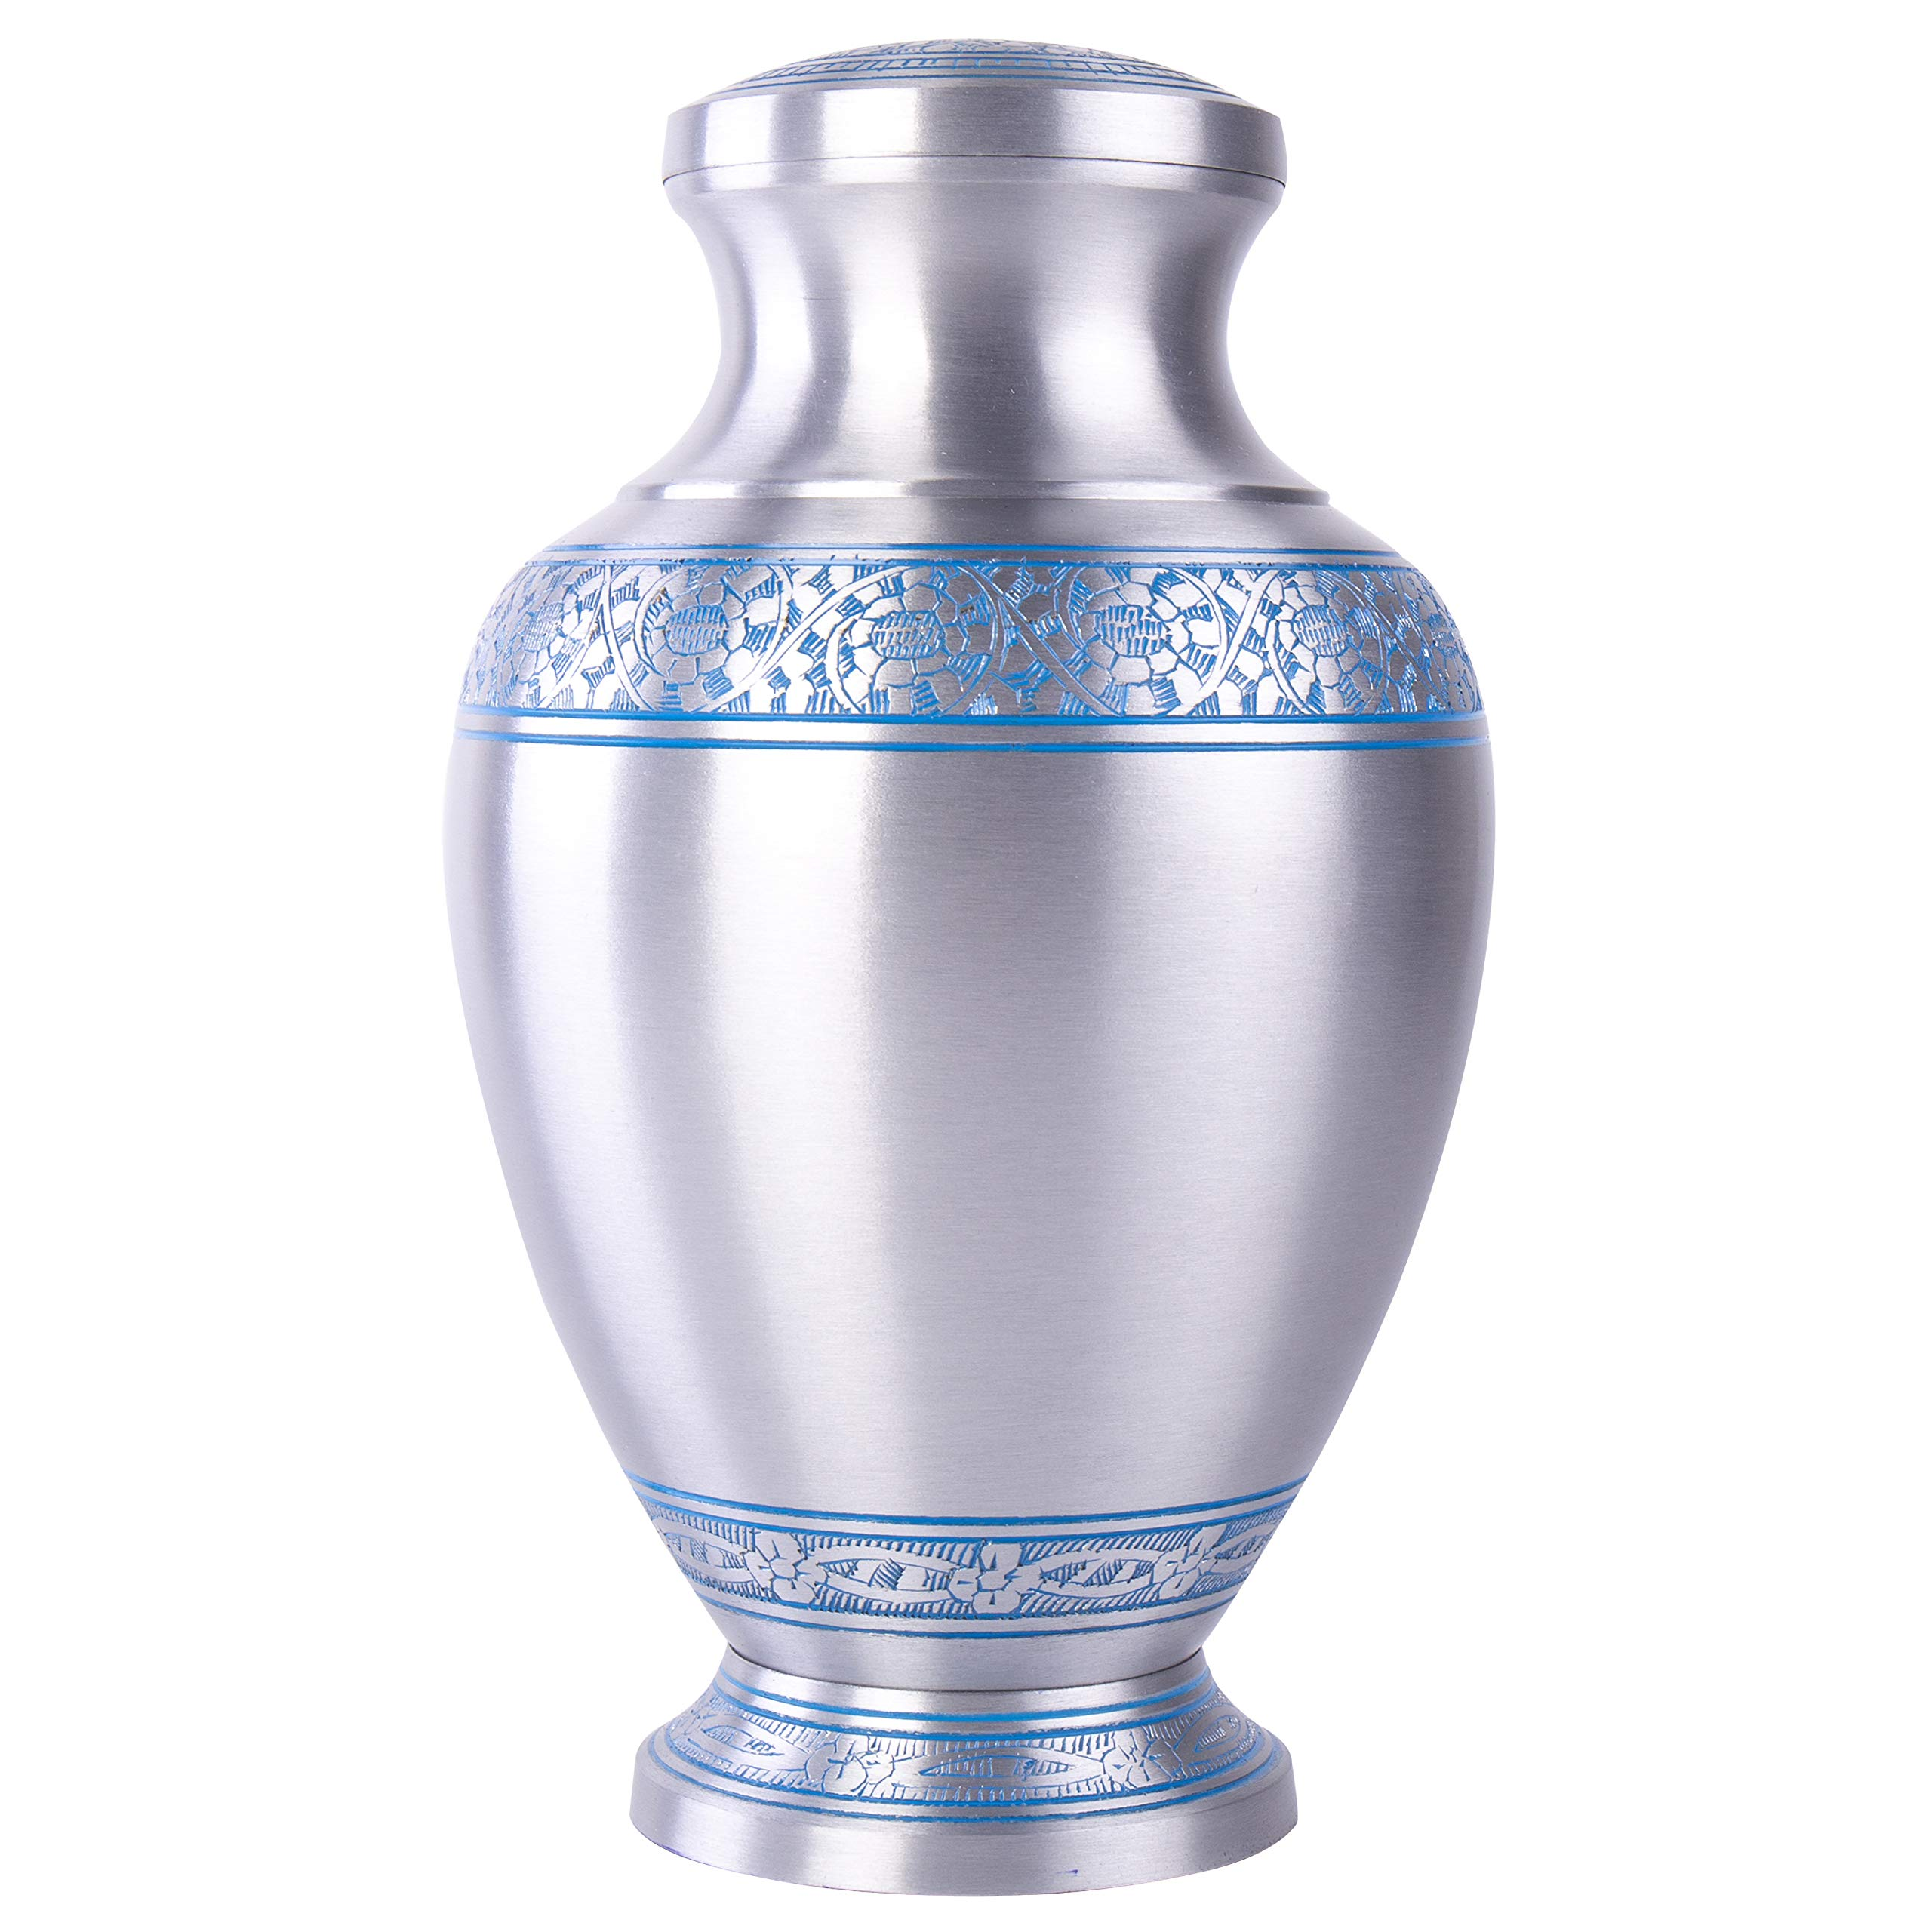 GSM Brands Cremation Urn Holds Adult Human Ashes - Large Handcrafted Funeral Memorial with Elegant Silver Design (Aluminum - 12 Inch Height x 7.2 Inch Width)